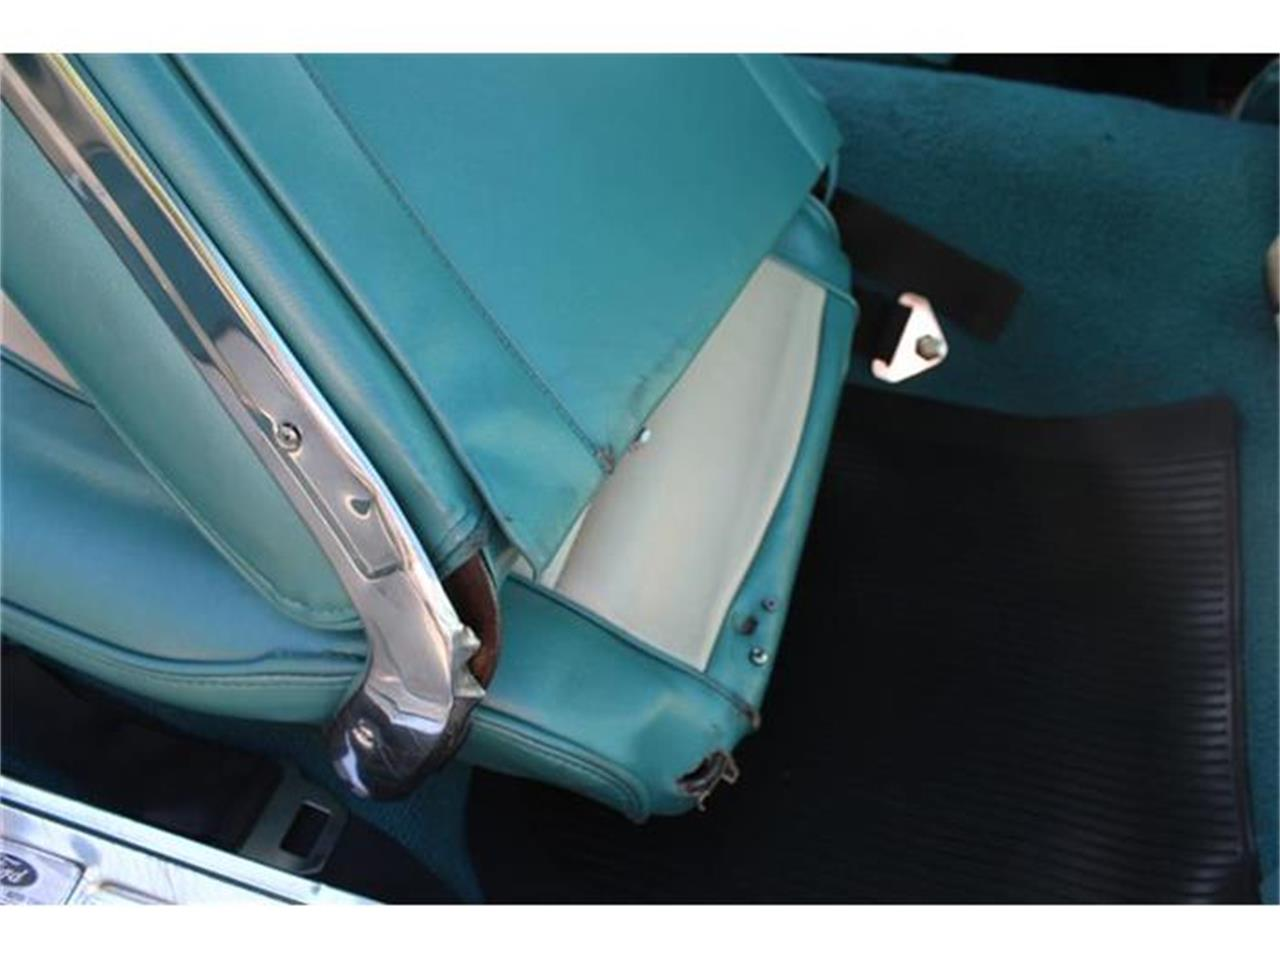 Large Picture of 1966 Ford Mustang - $40,000.00 Offered by a Private Seller - BFEI